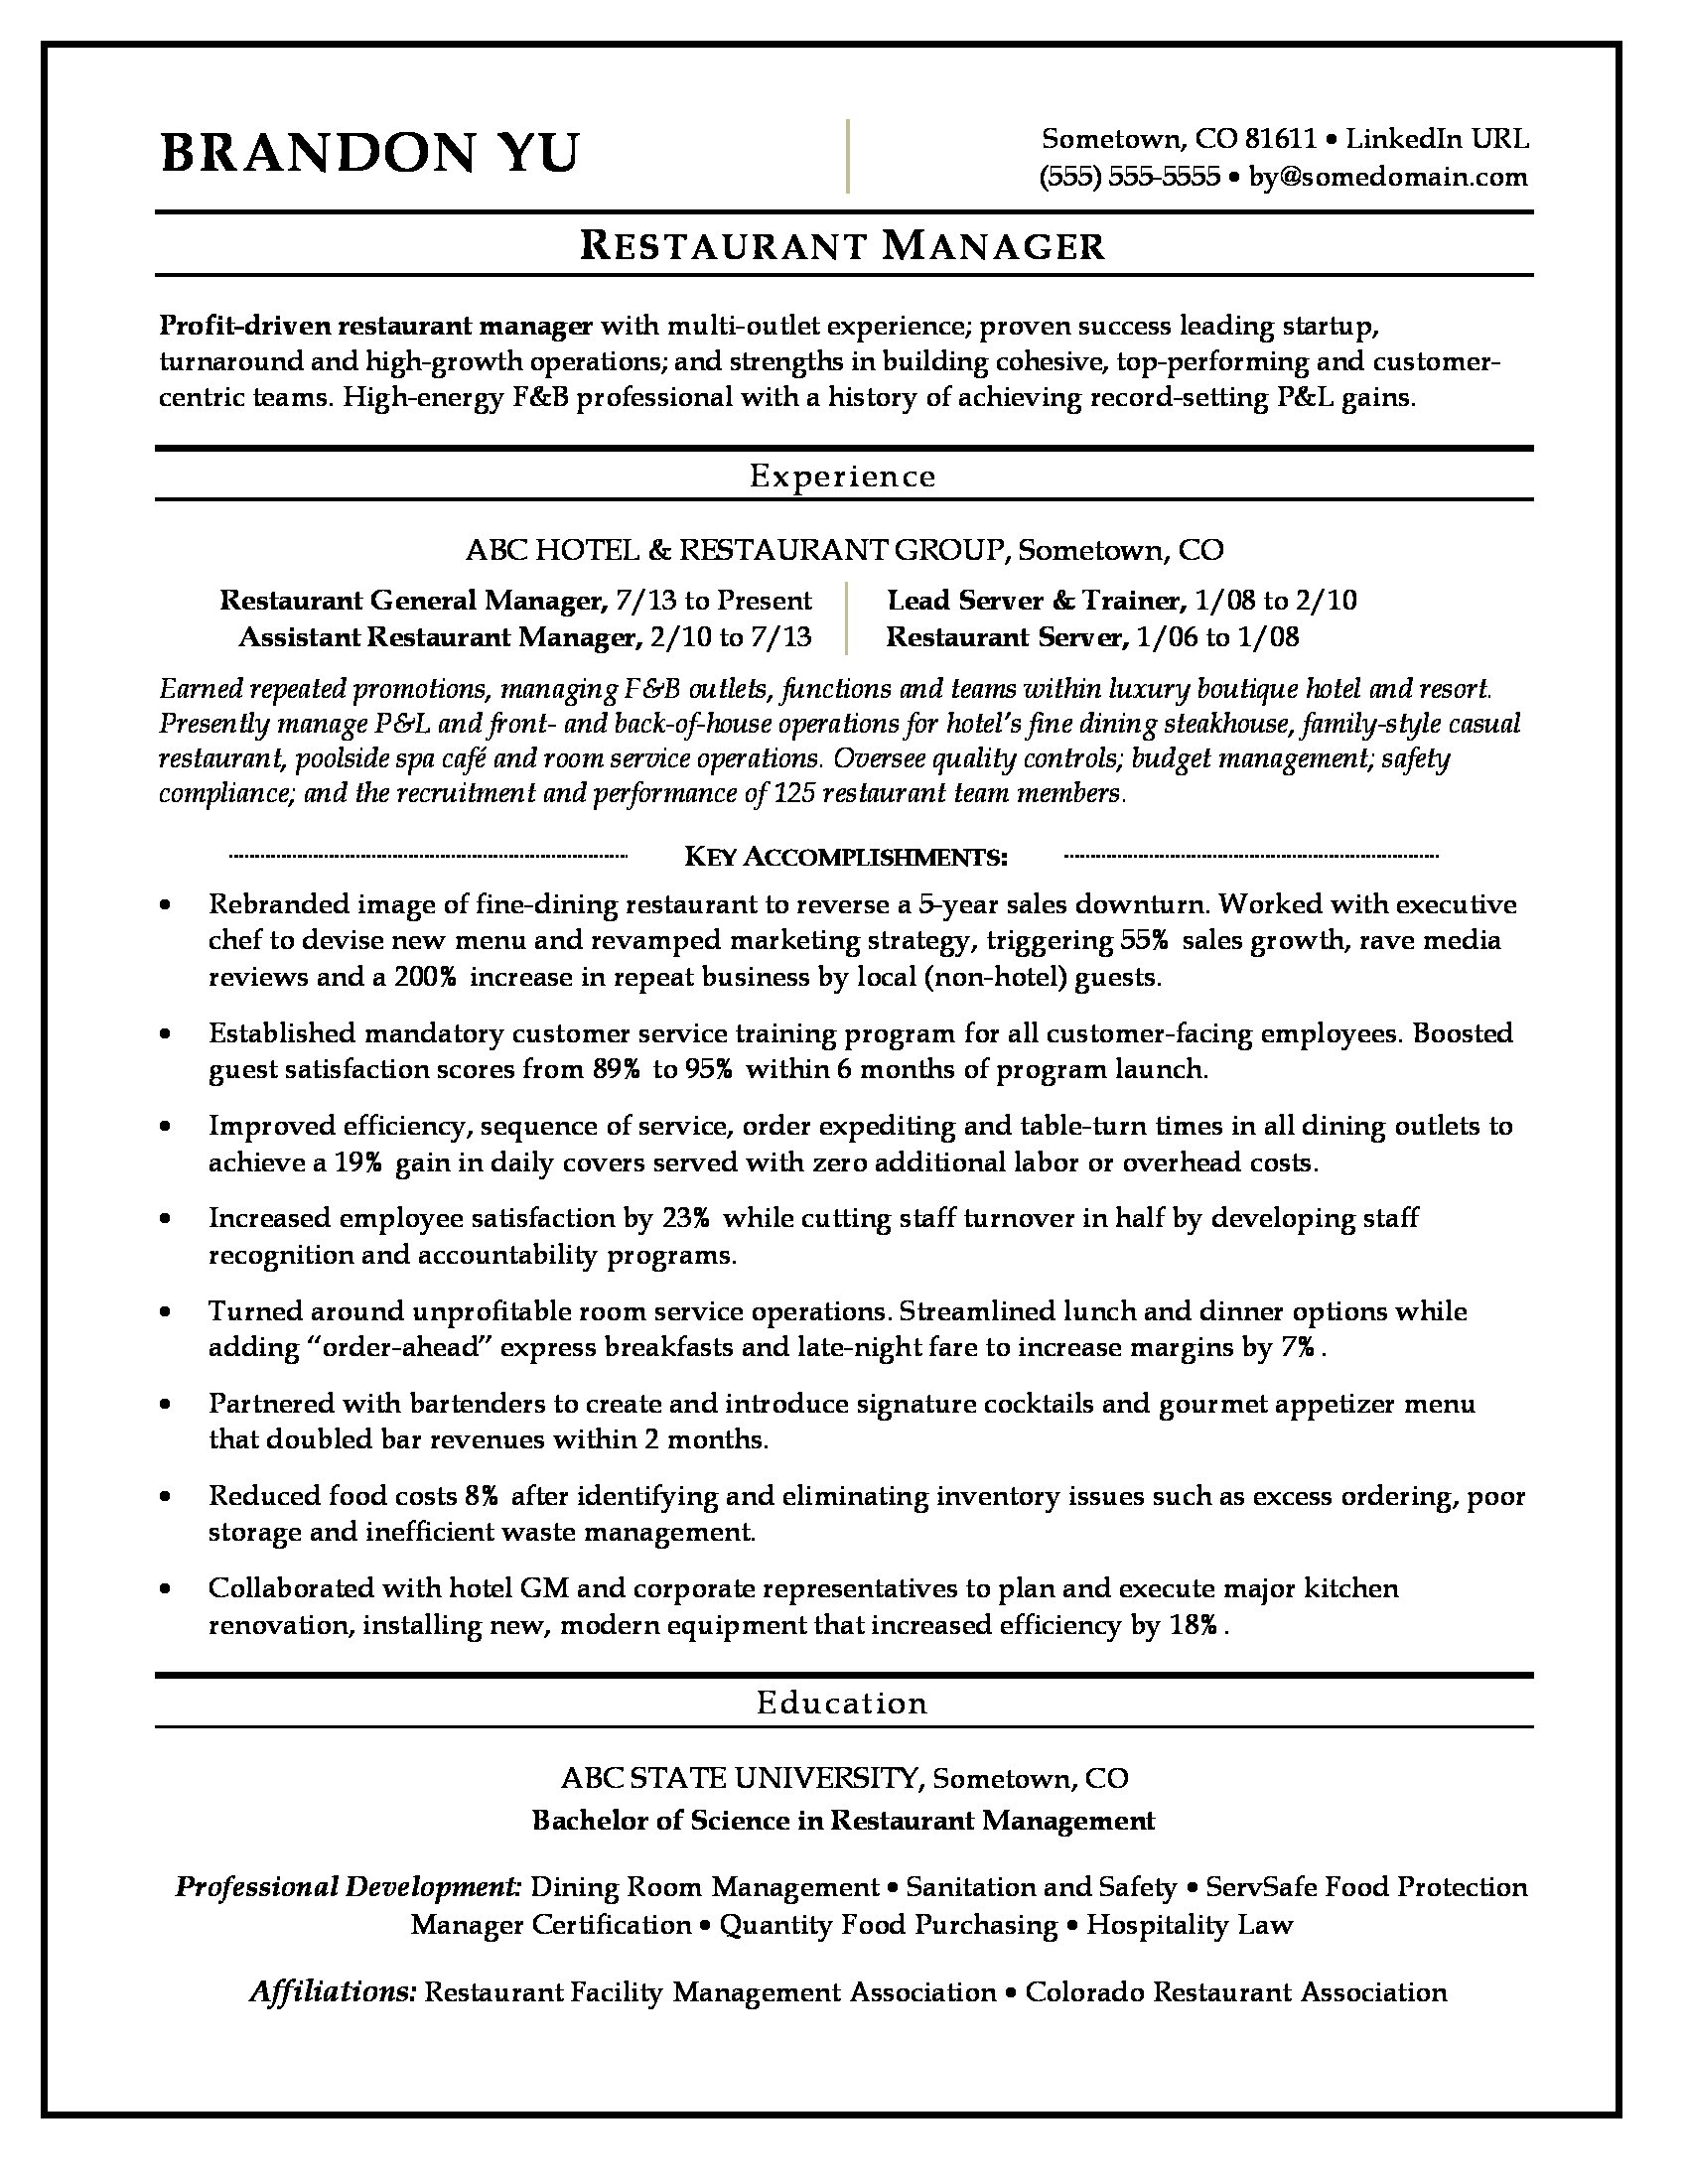 Great Sample Resume For A Restaurant Manager And Sample Resume For Restaurant Manager